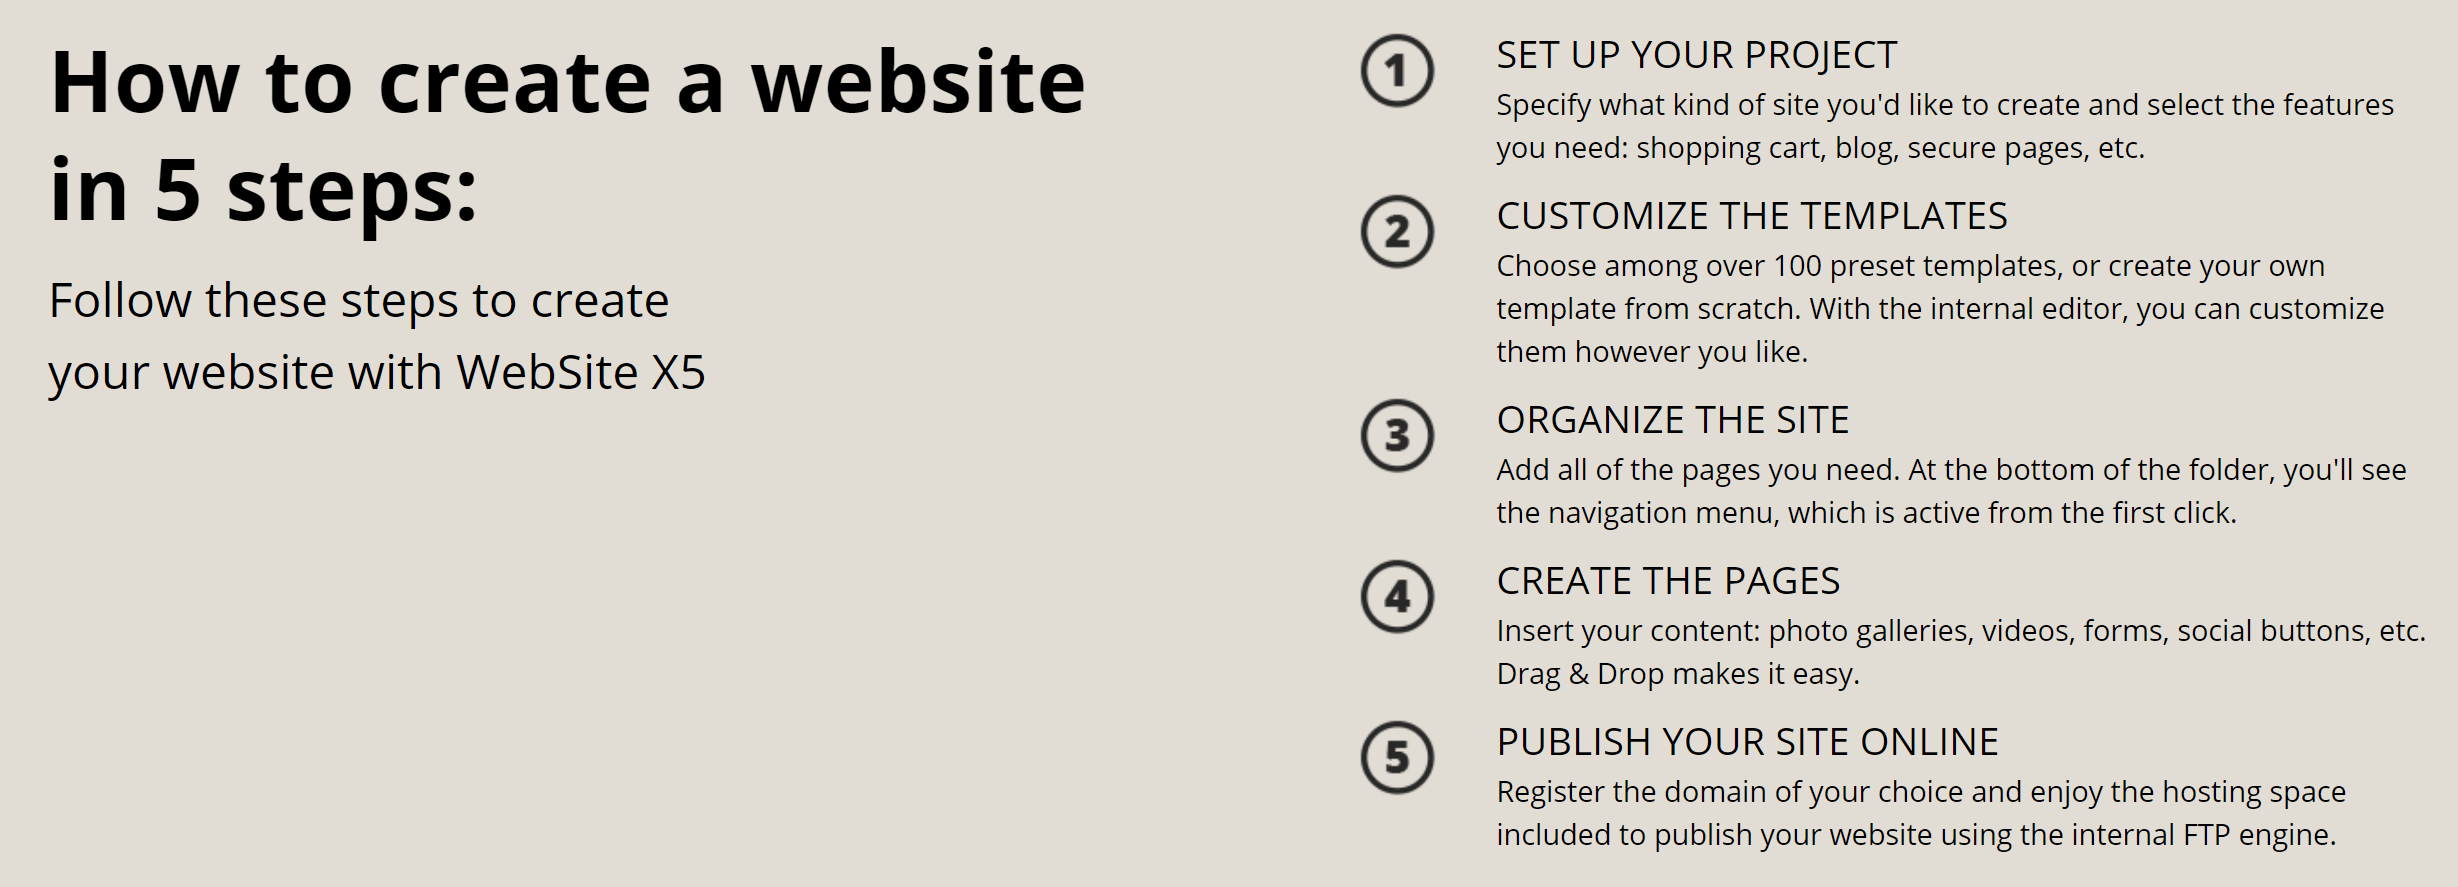 WebSite X5 Feature